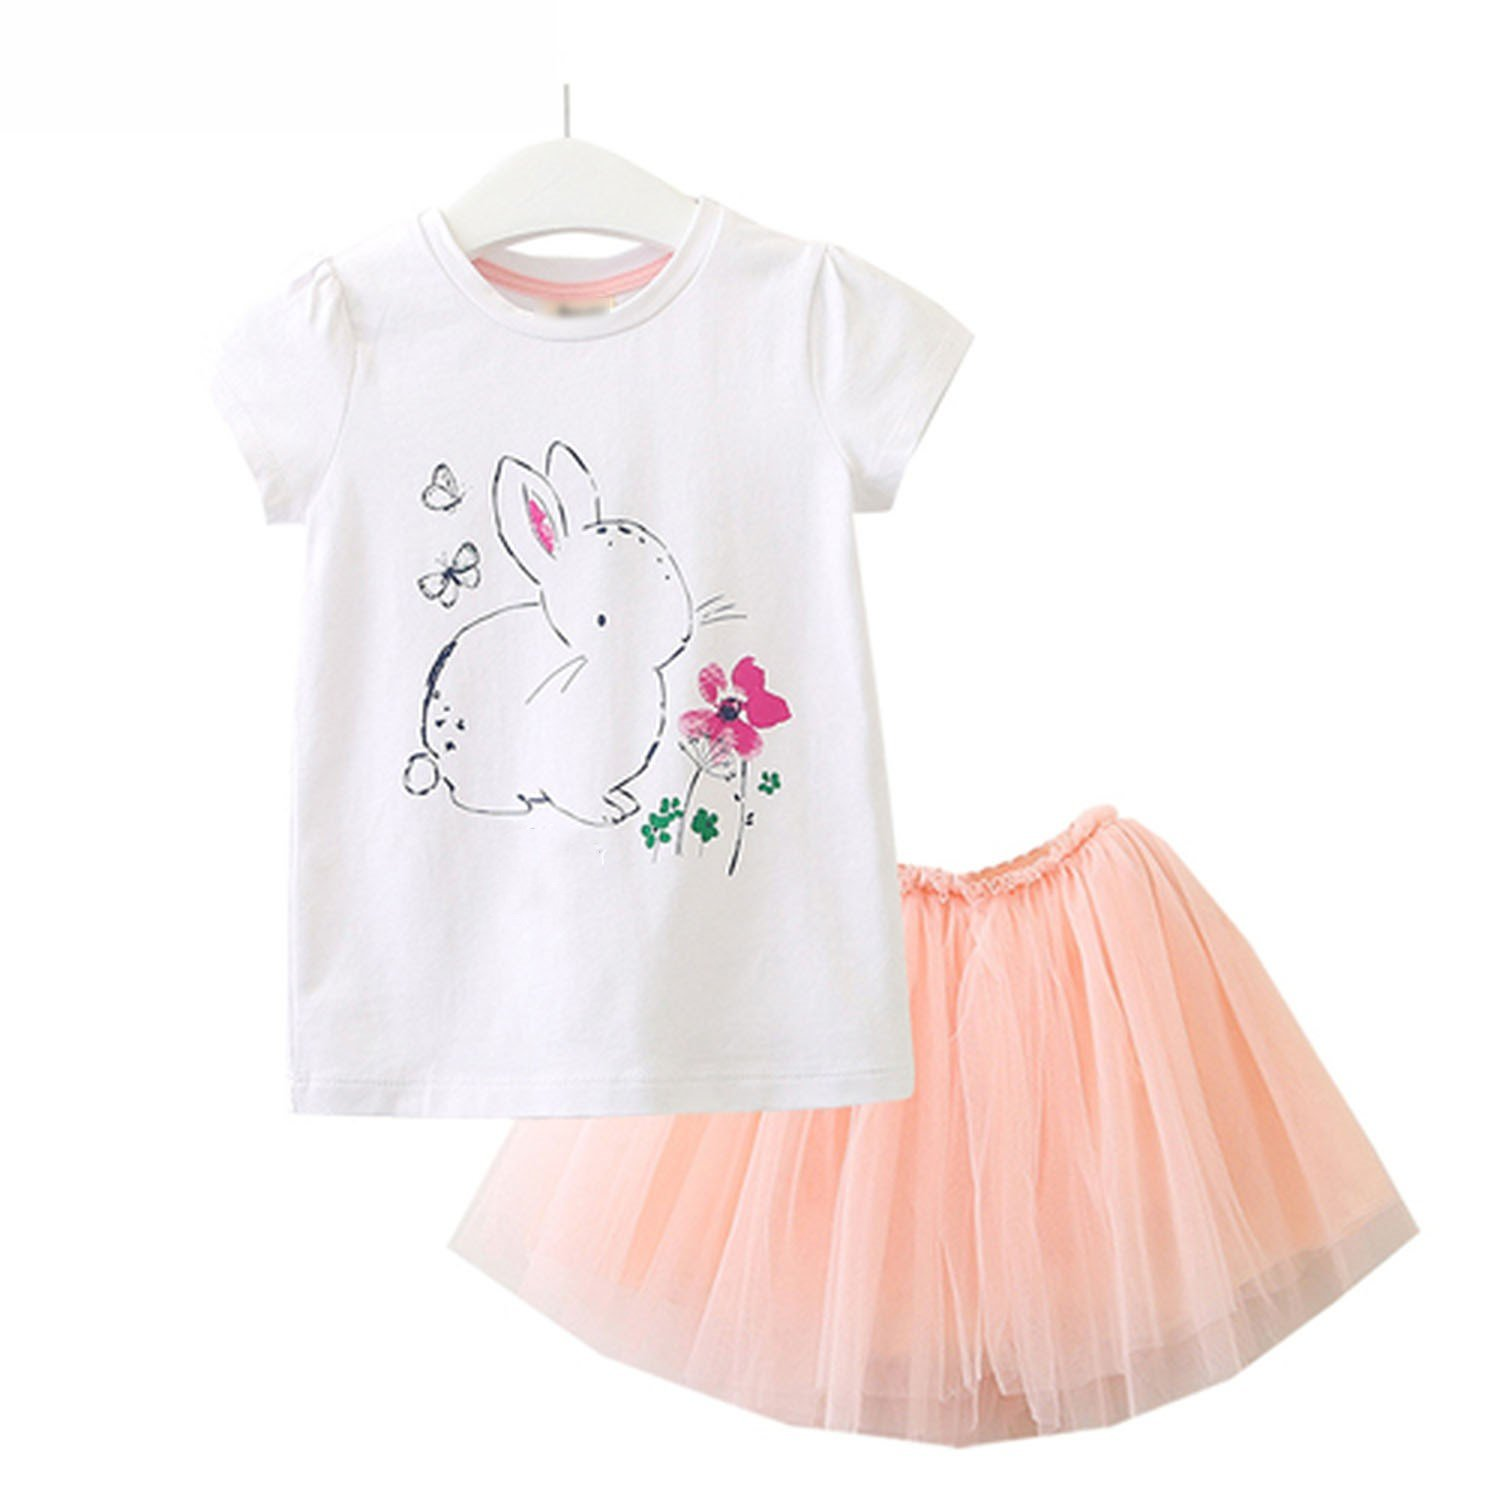 Zcaosma Baby Girls Clothes Cartoon Printing Girls Clothing Sets Girl Tops+Skirt,White,Чт